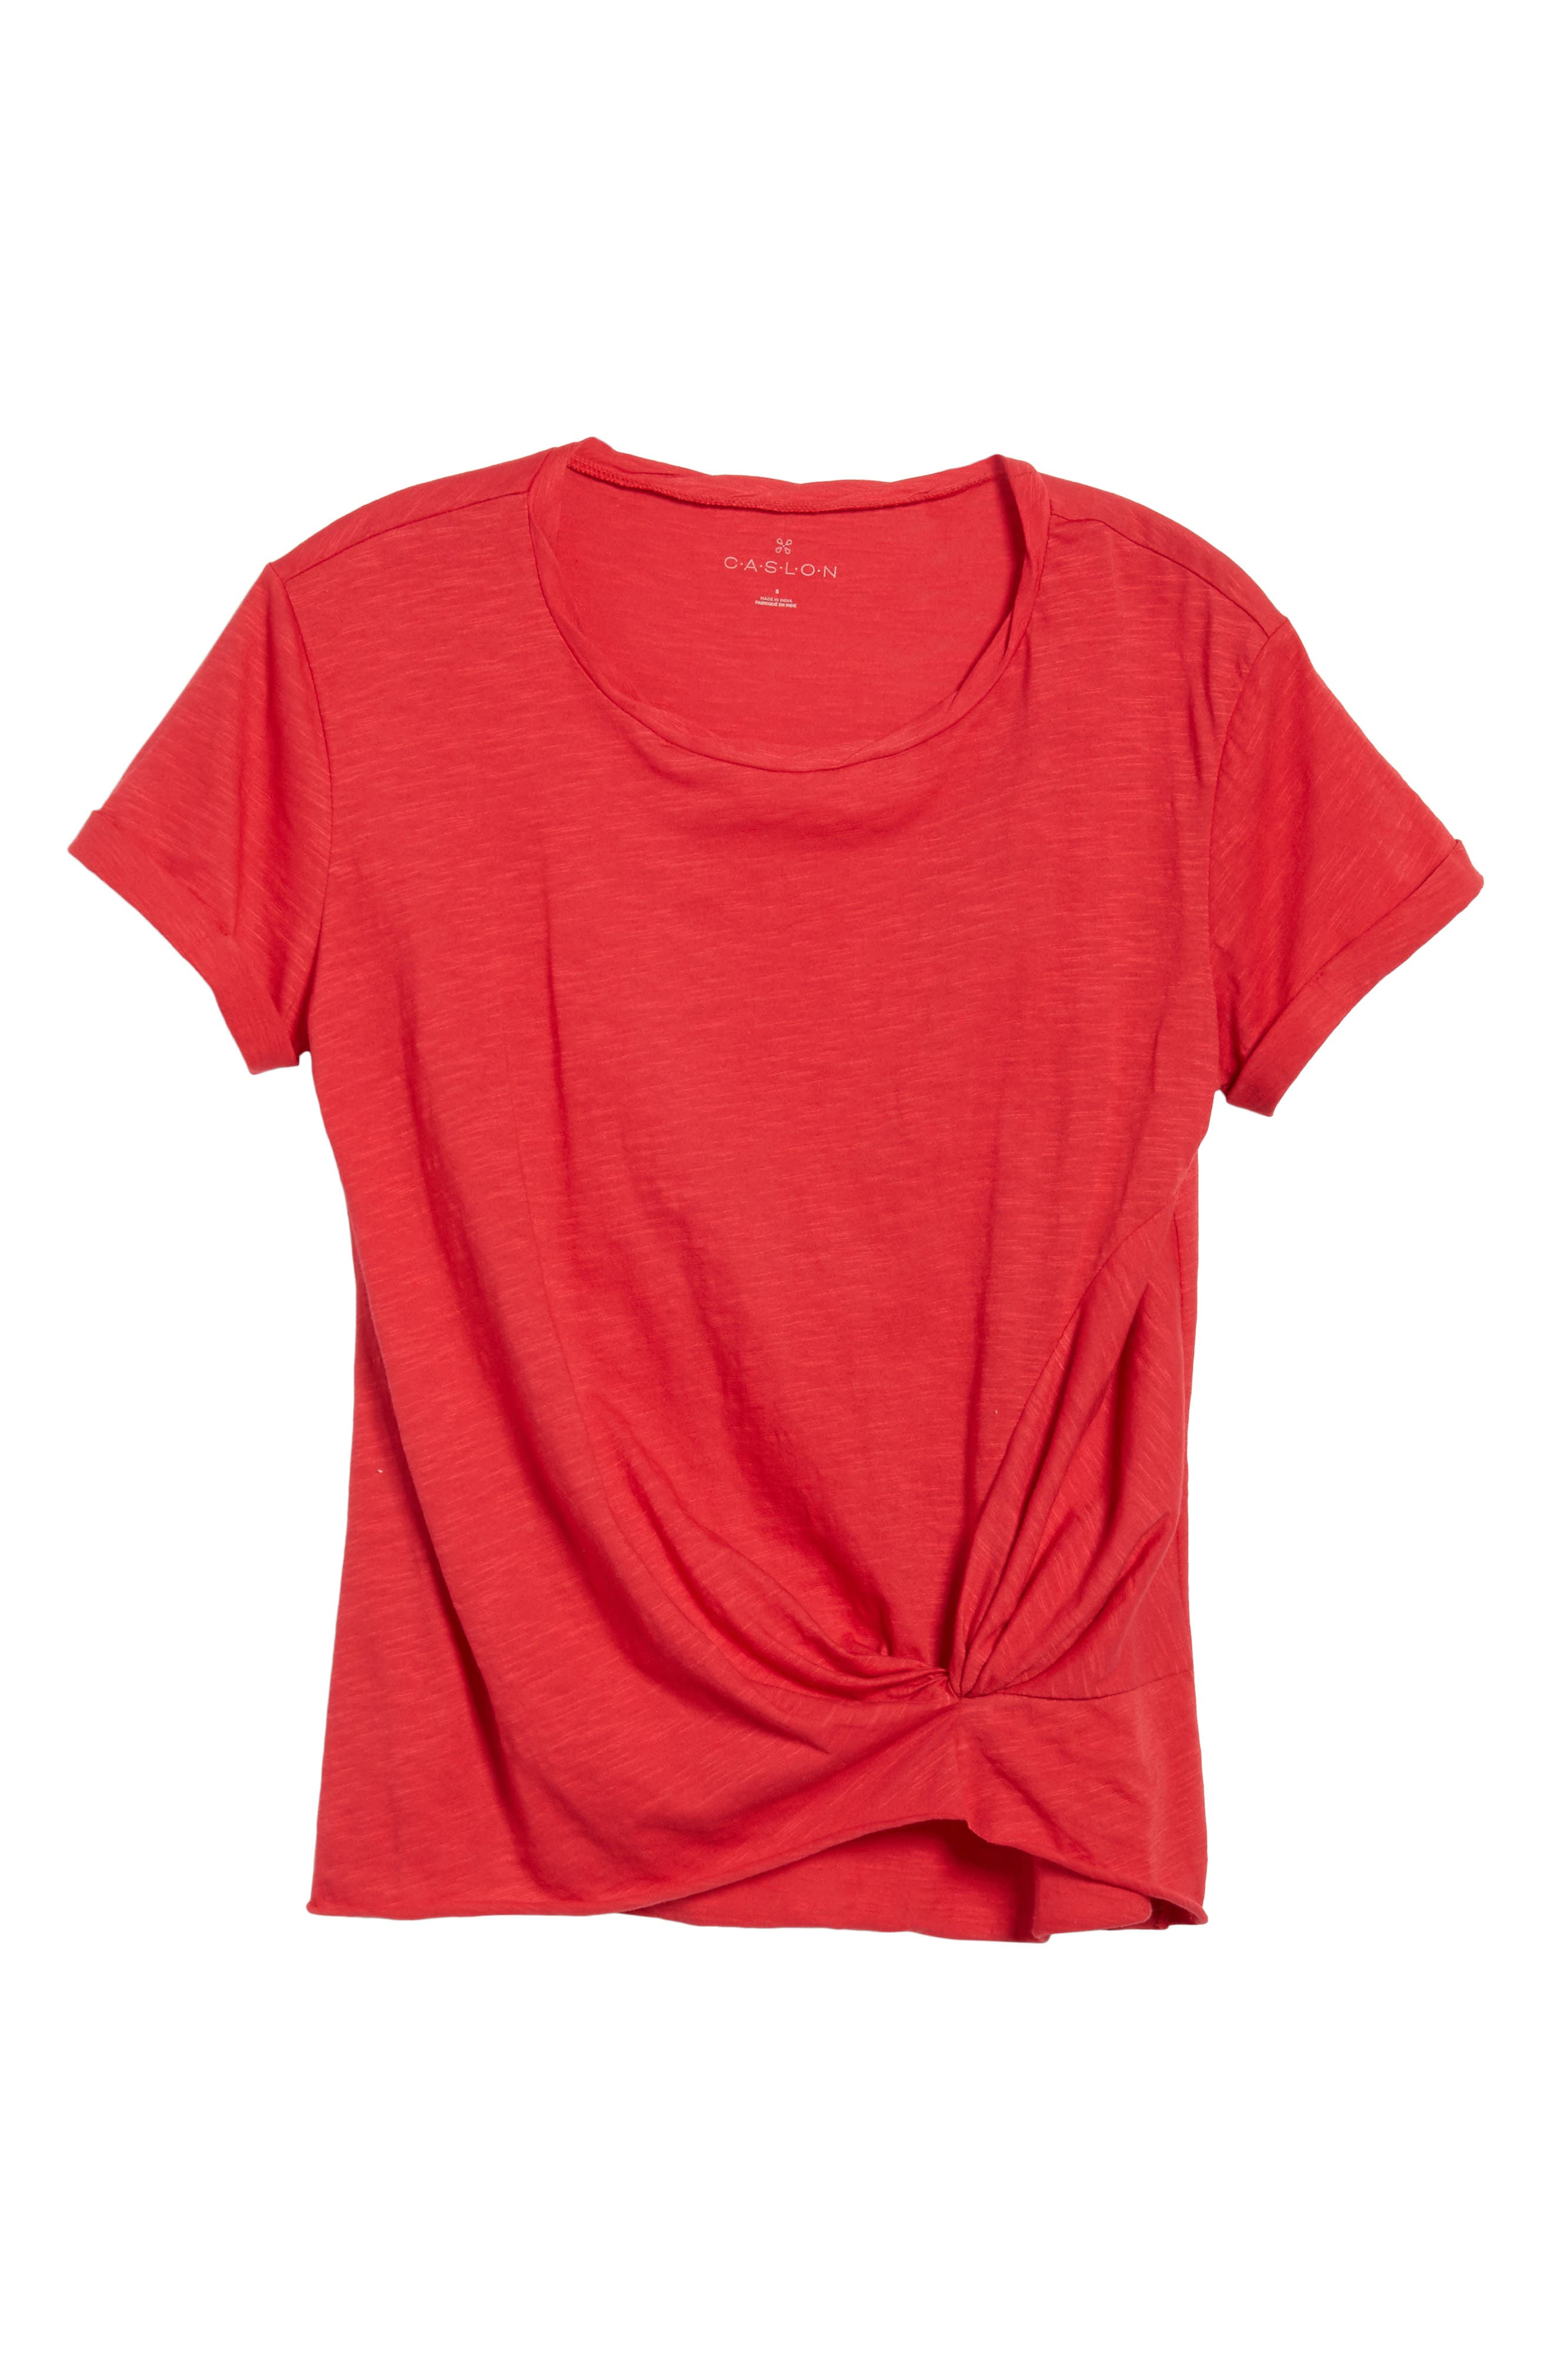 Knotted Tee,                             Alternate thumbnail 6, color,                             601